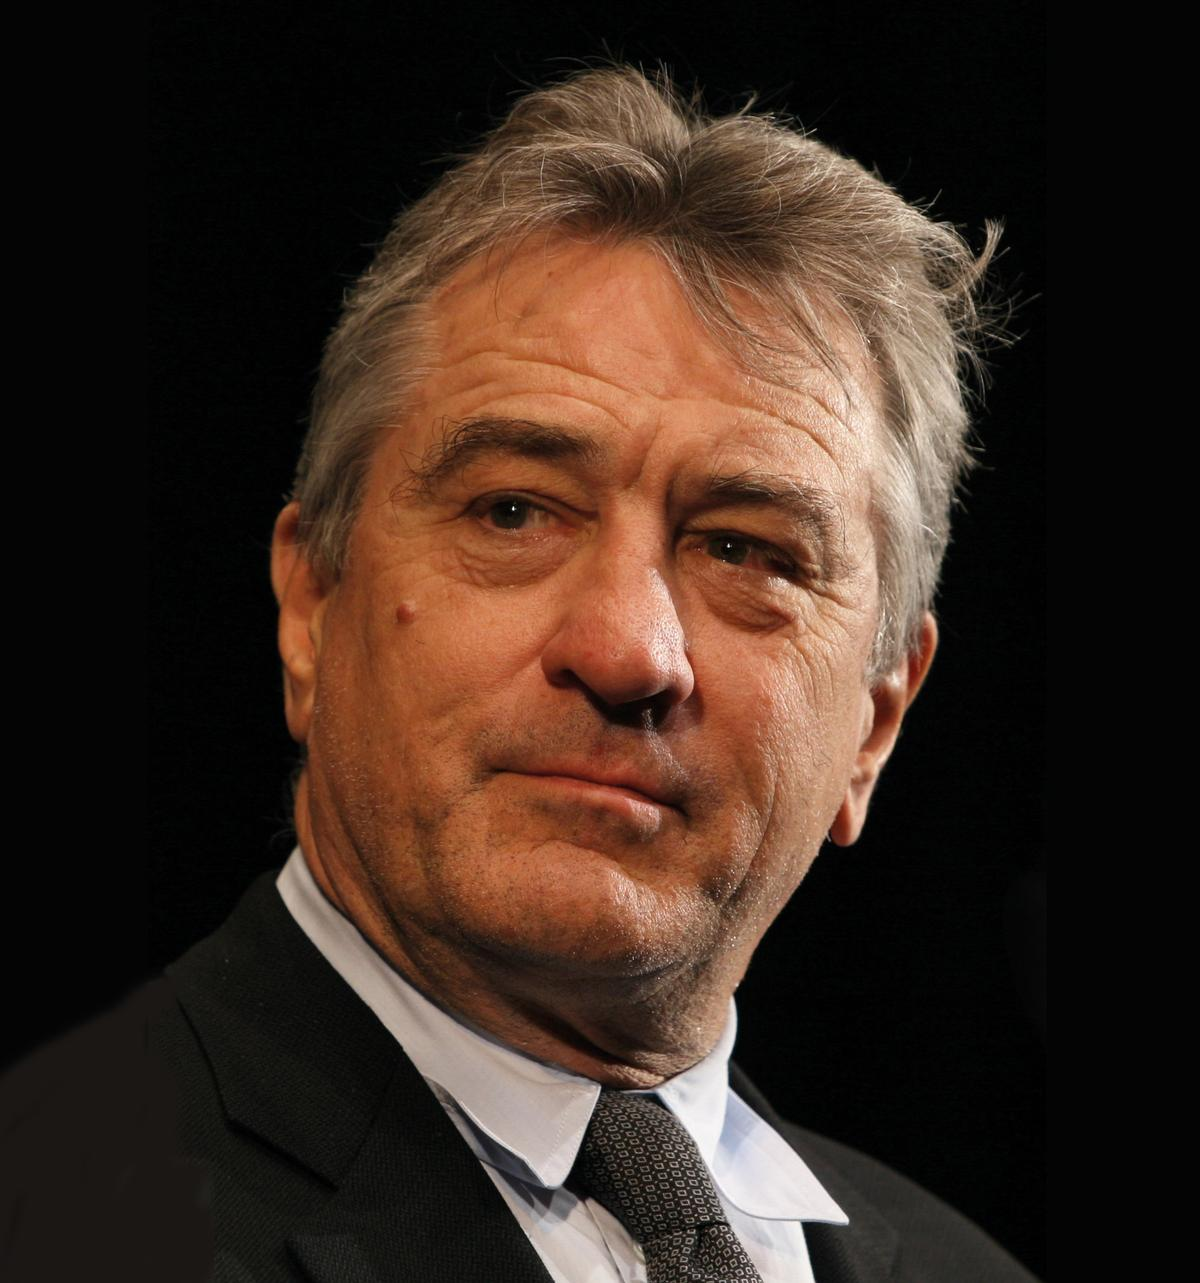 Robert De Niro will build a hotel in Covent Garden now that planning permission has been granted / Petr Novák, Wikipedia